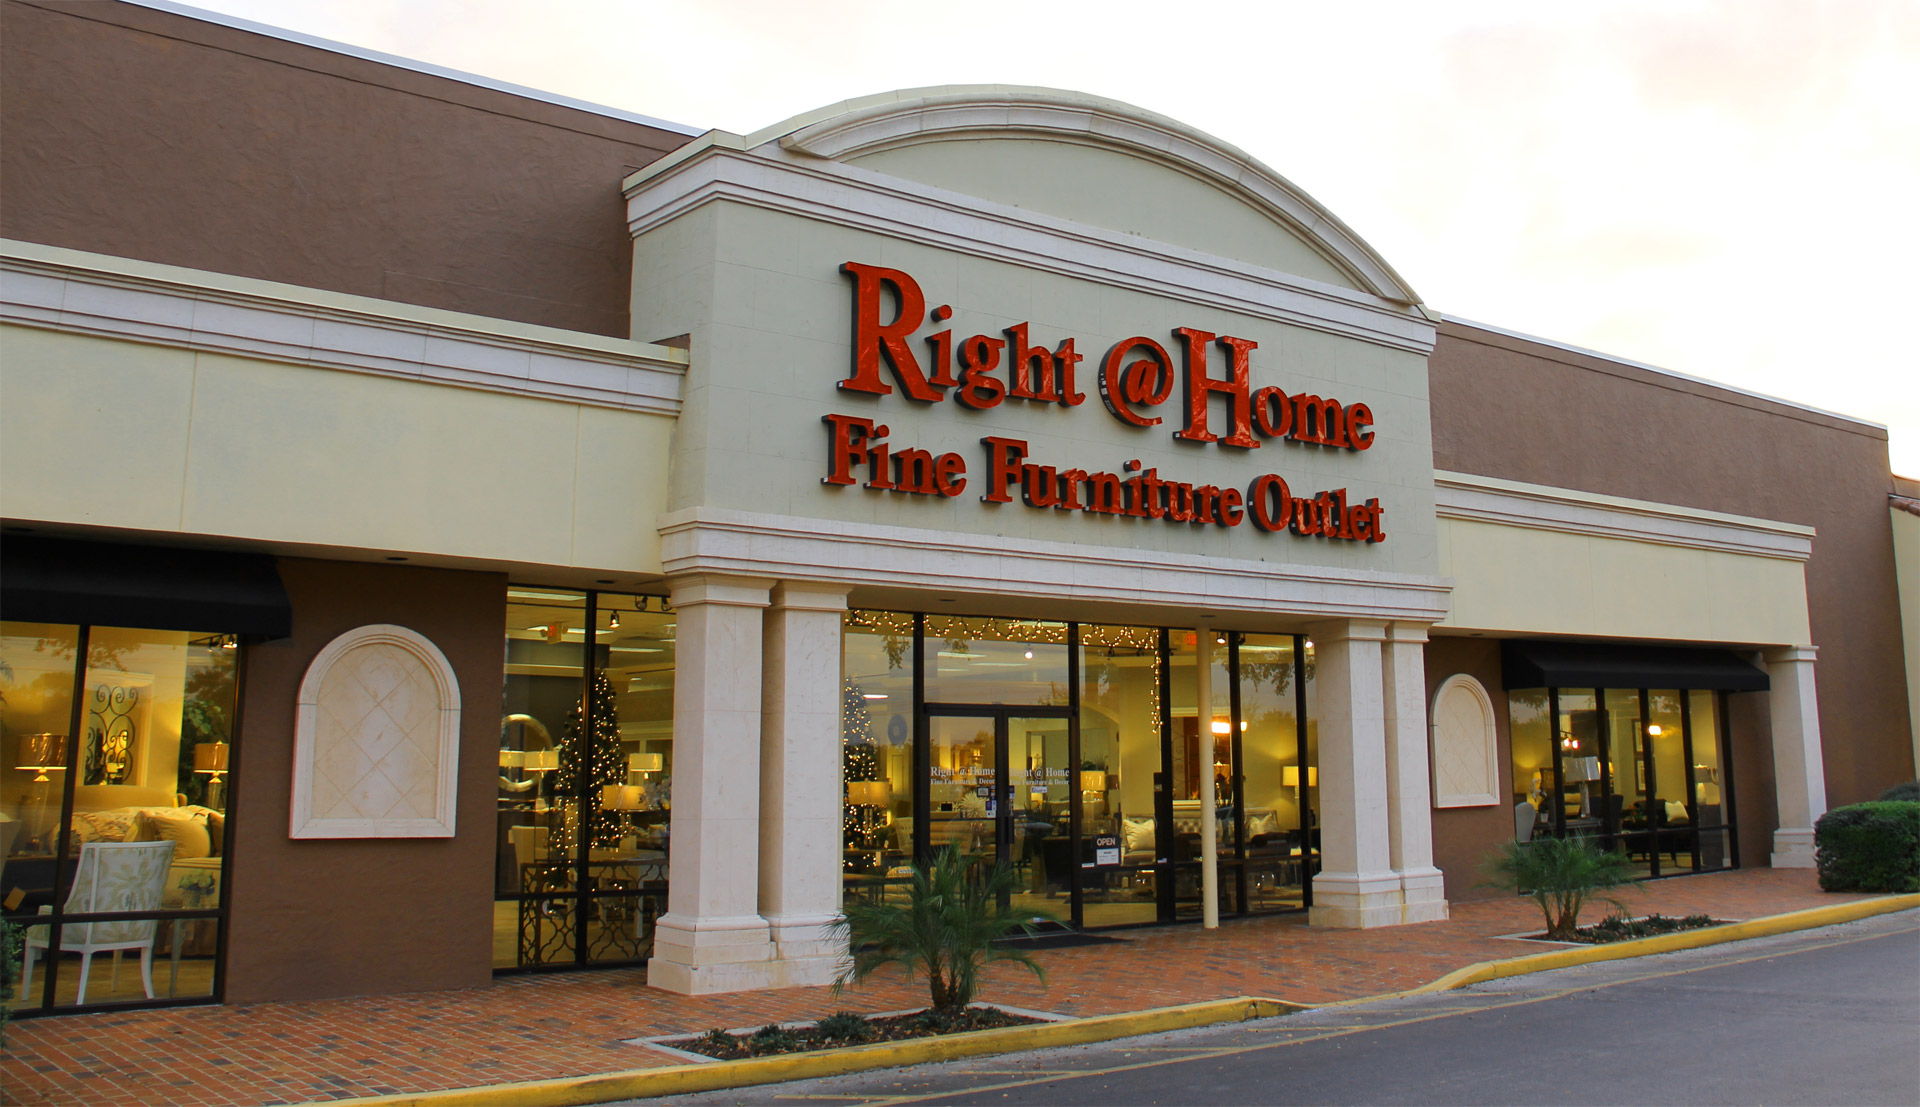 Altamonte Furniture Store Luxury Furniture Outlet